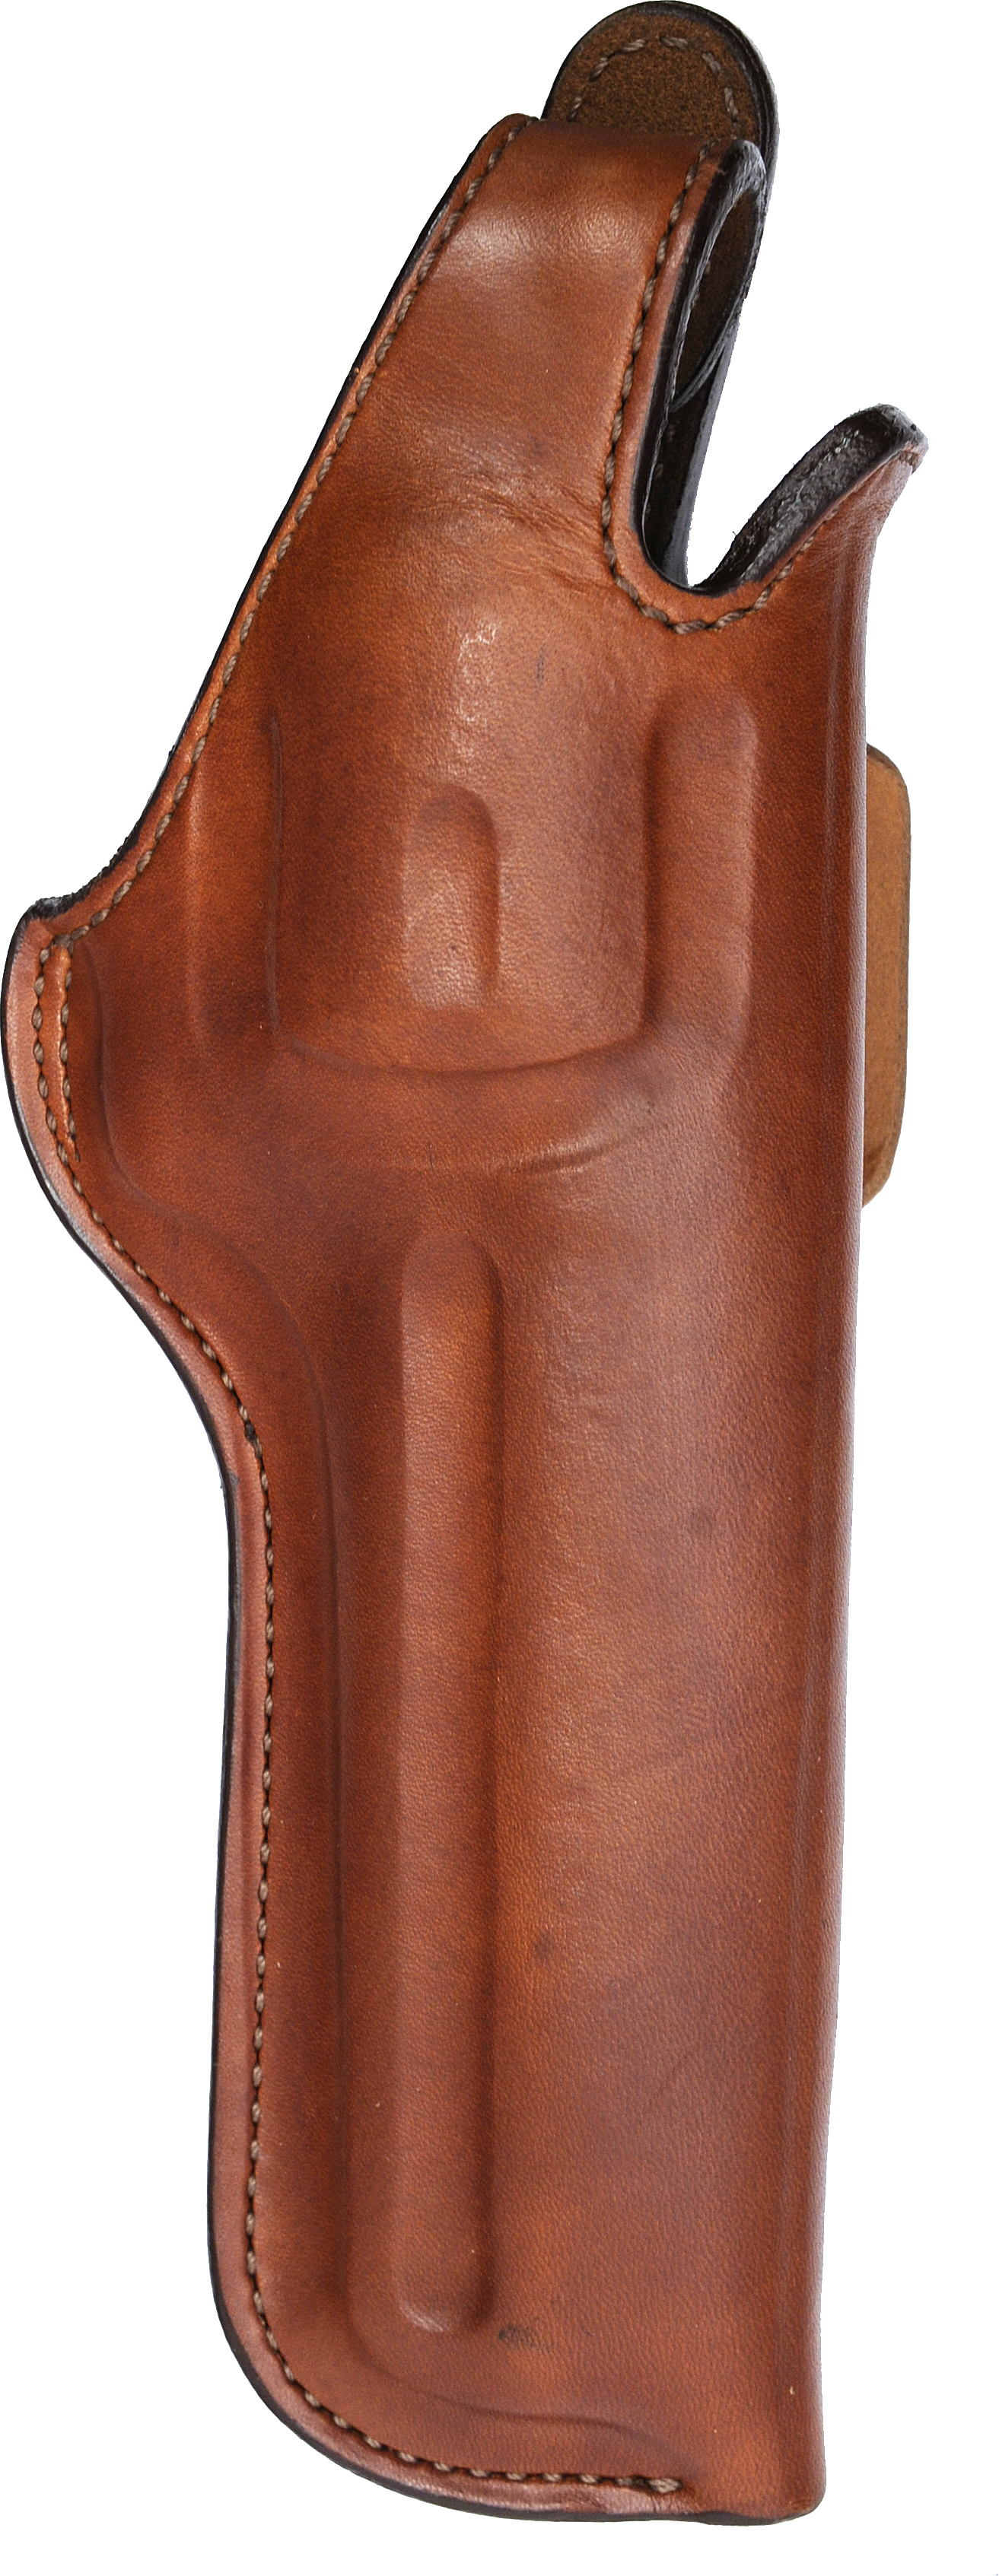 Bianchi 5BHL Thumbsnap Suede Lined Belt Holster